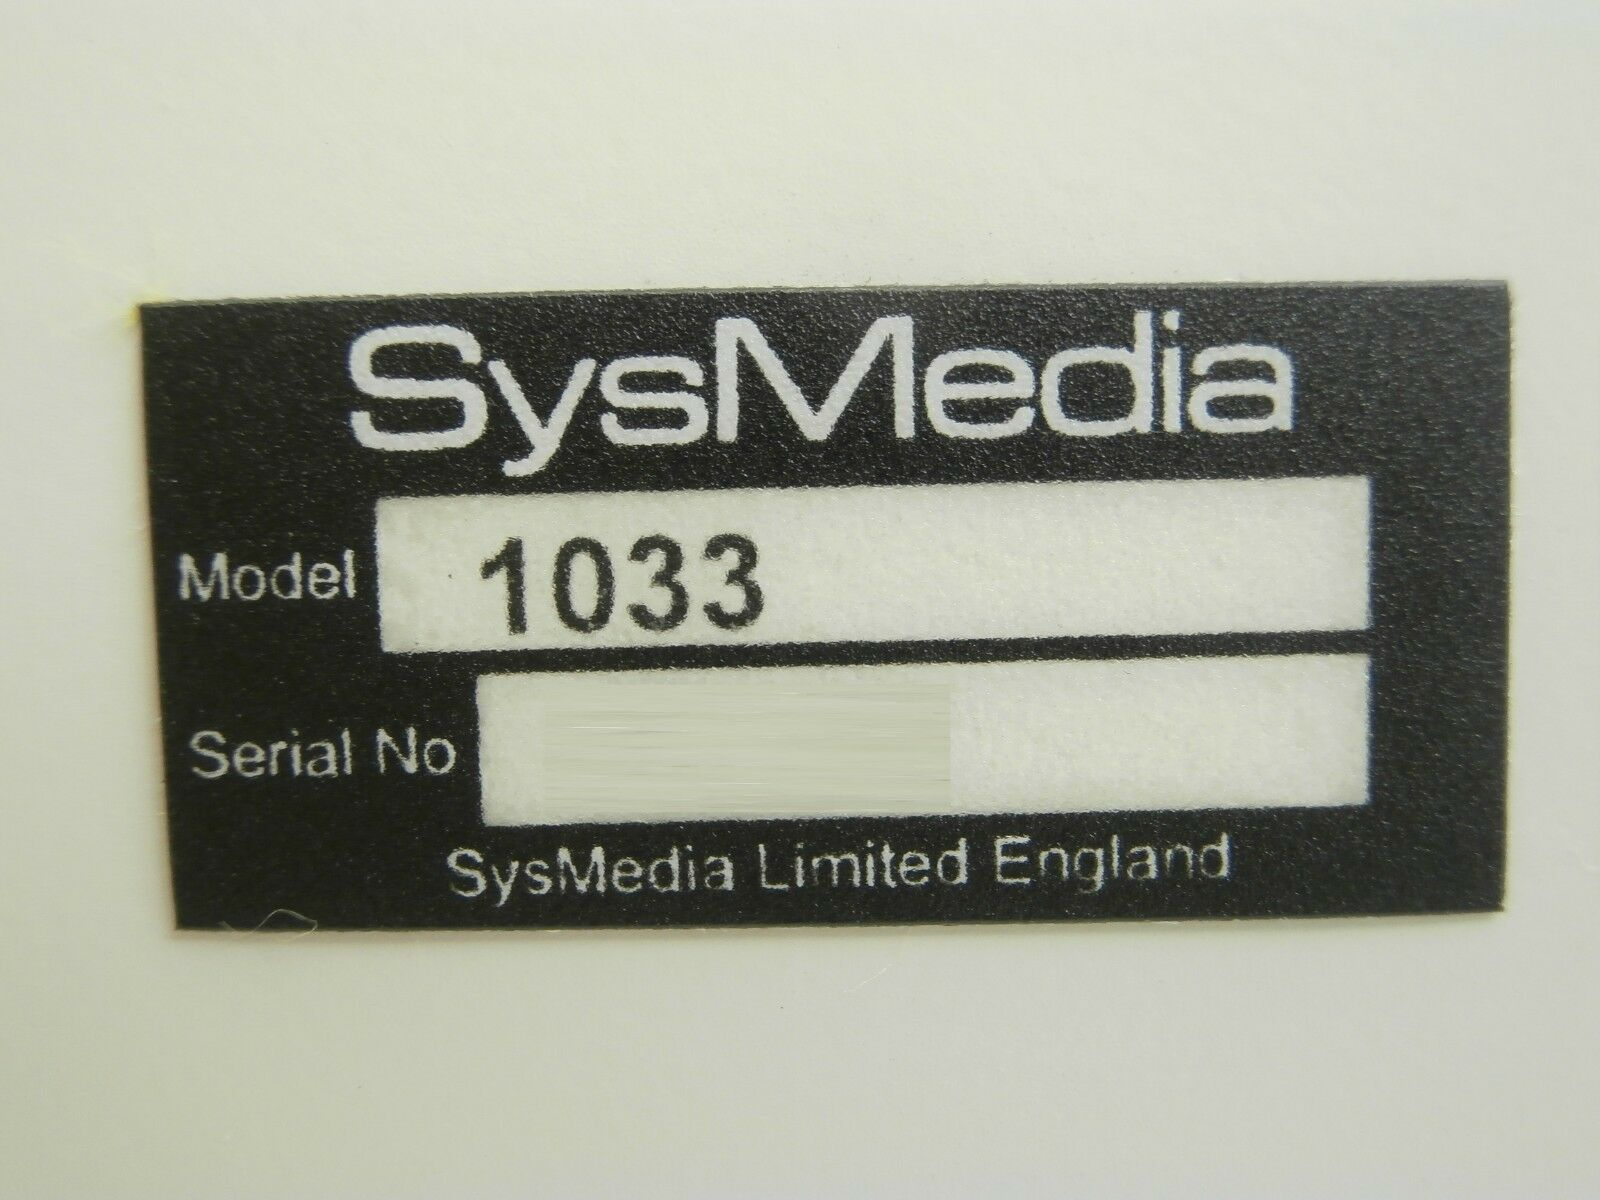 SysMedia 1033 Teletext Calibrated Distortion Unit Used Working